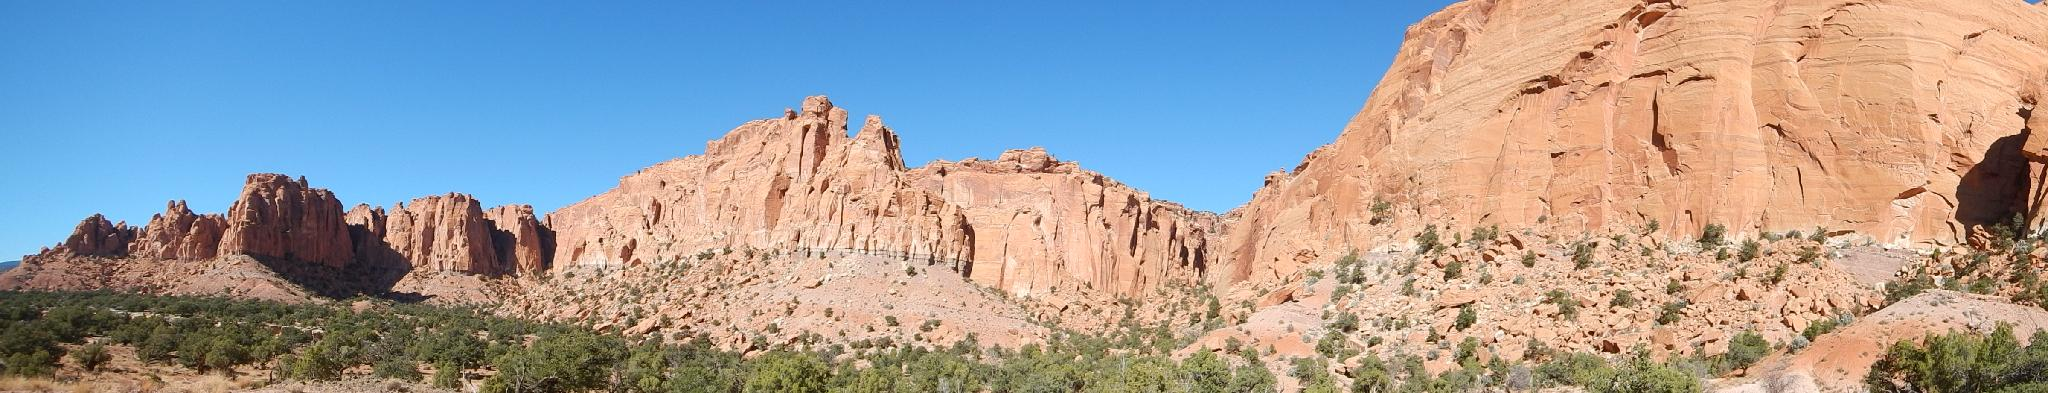 Panorama from the base of the final route up to the mesa top.